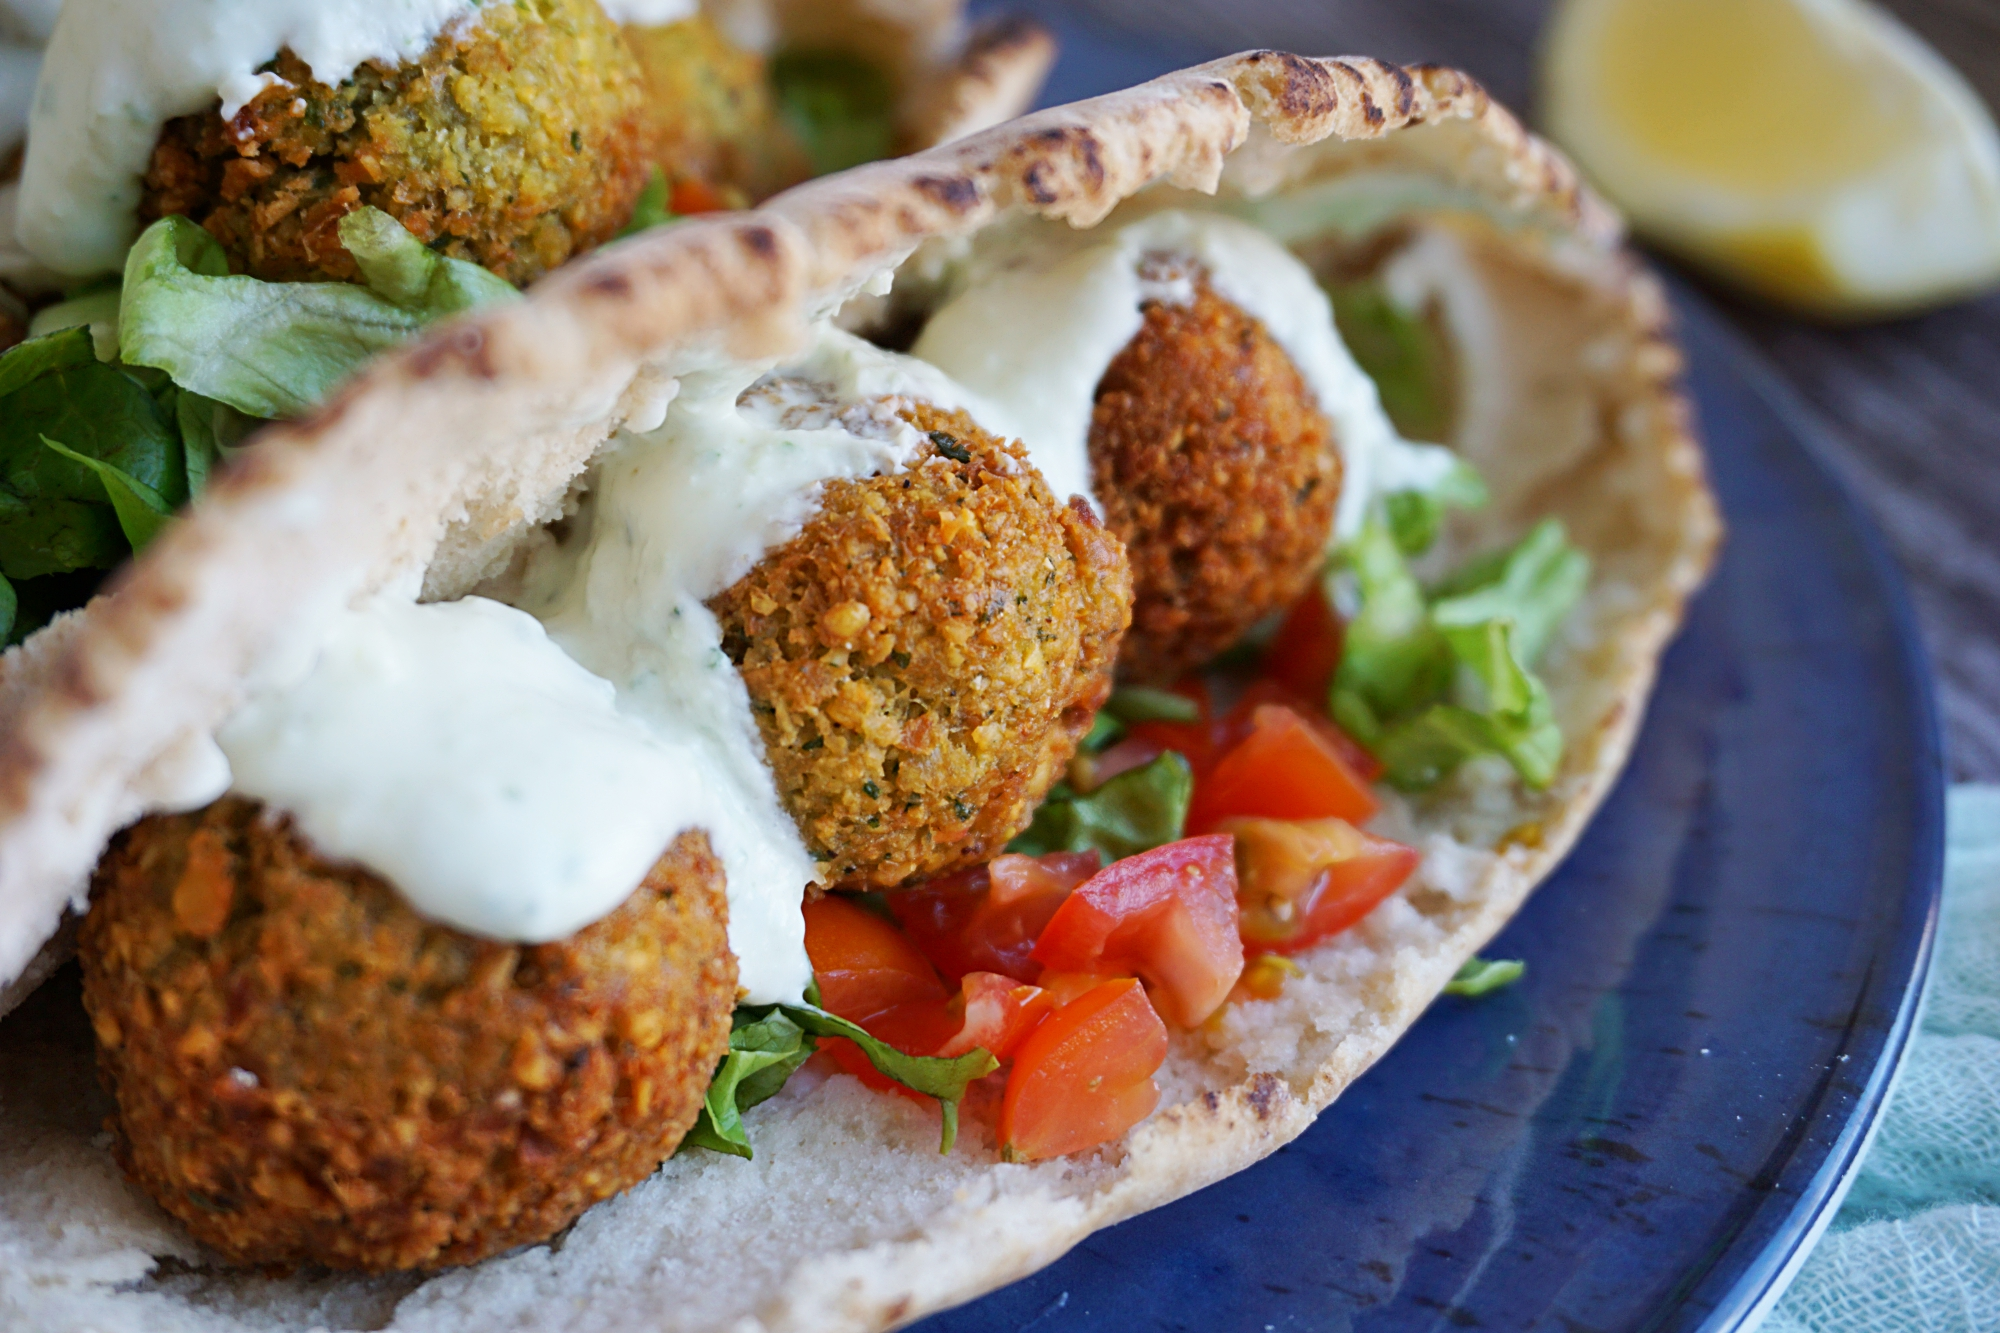 Falafel sandwich with yogurt-cucumber sauce